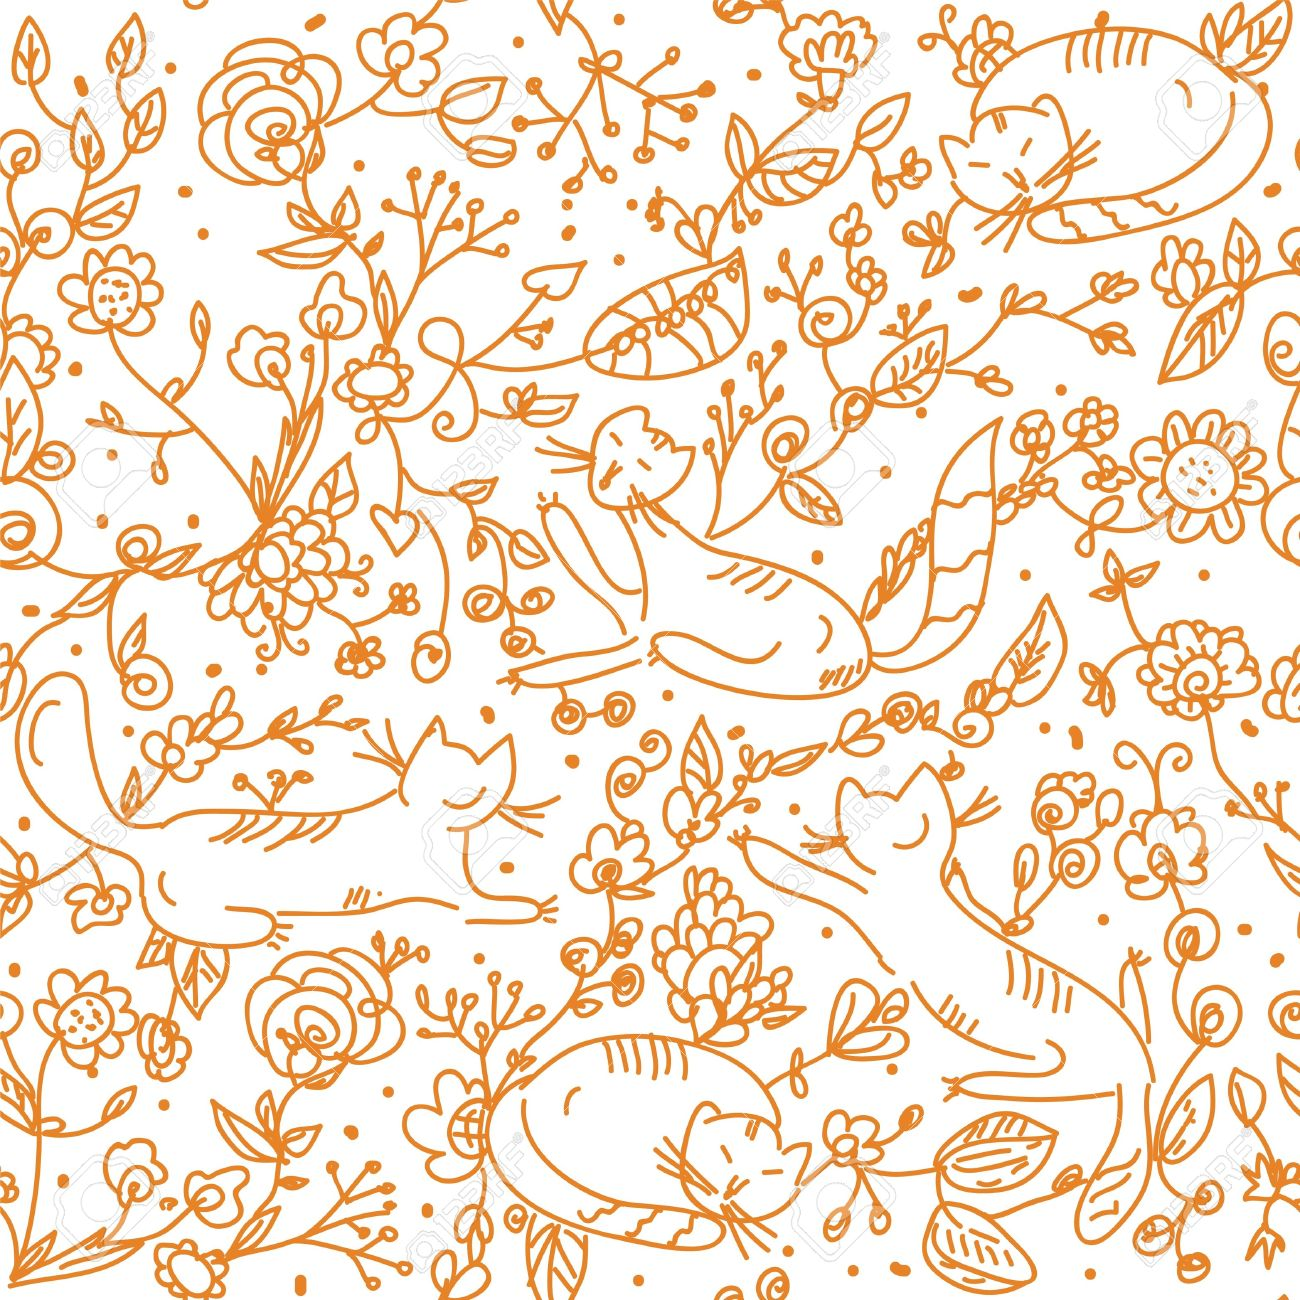 Floral Seamless Wallpaper With Cats Cartoon Royalty Free Cliparts